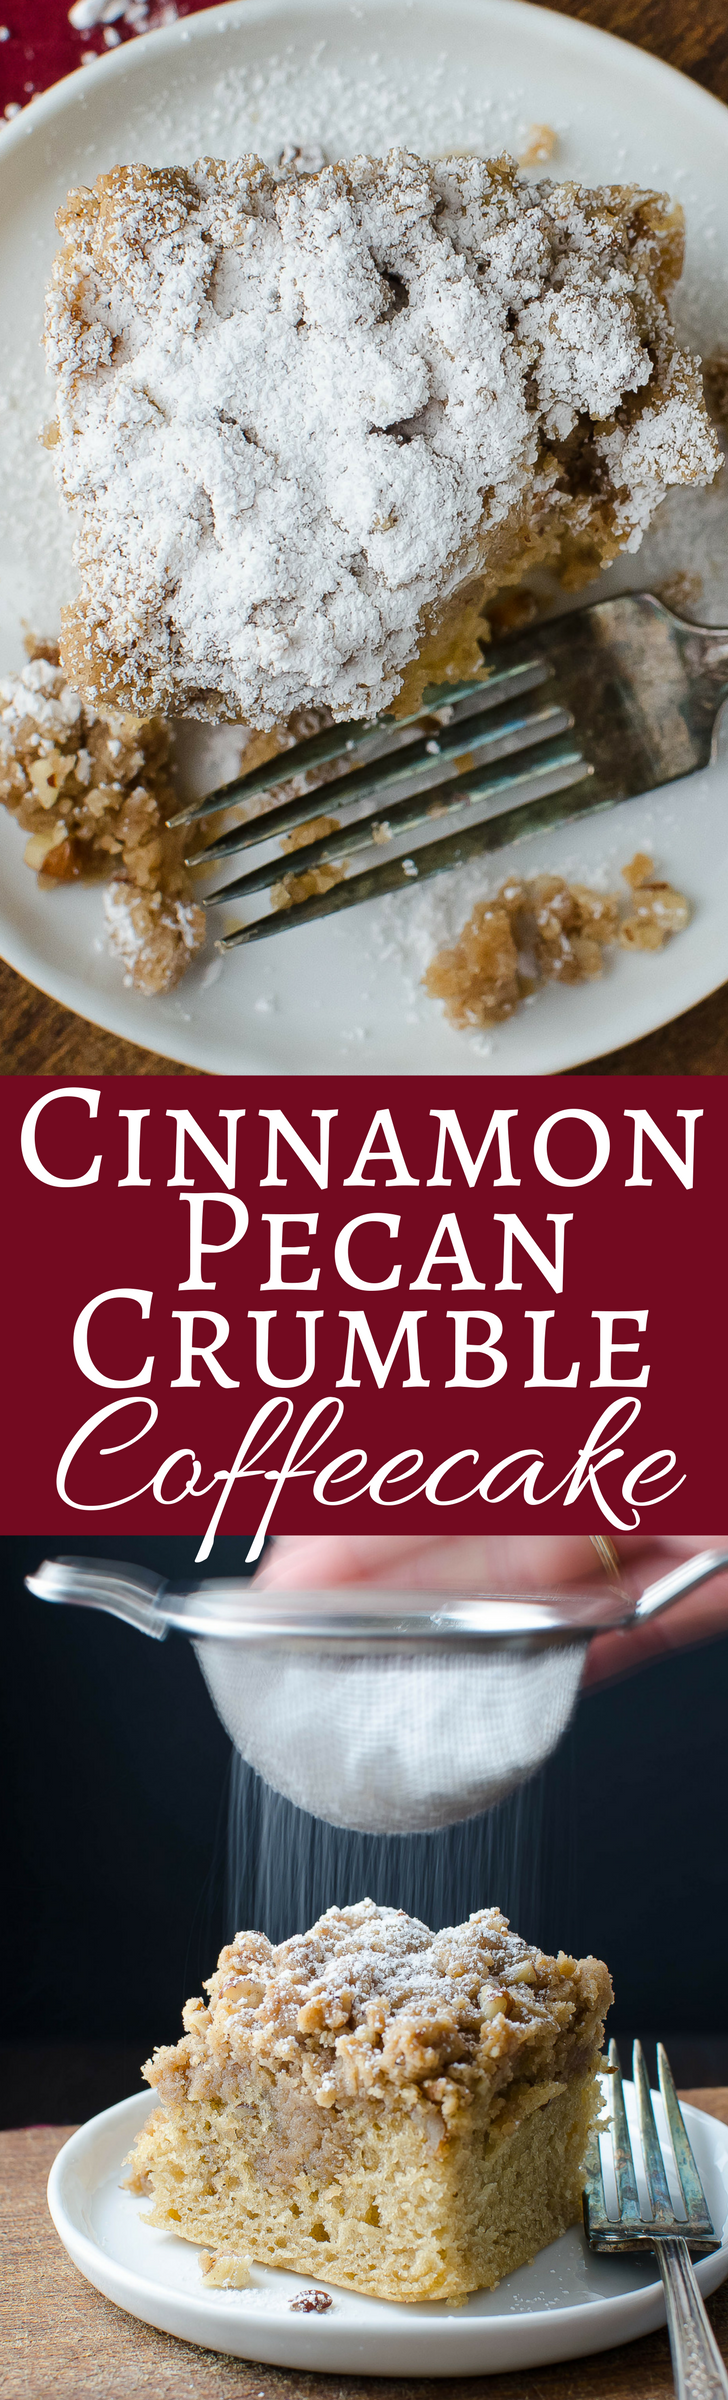 This coffee cake has a 2:1 ratio of cinnamon pecan crumble to cake - simple to make and utterly decadent!